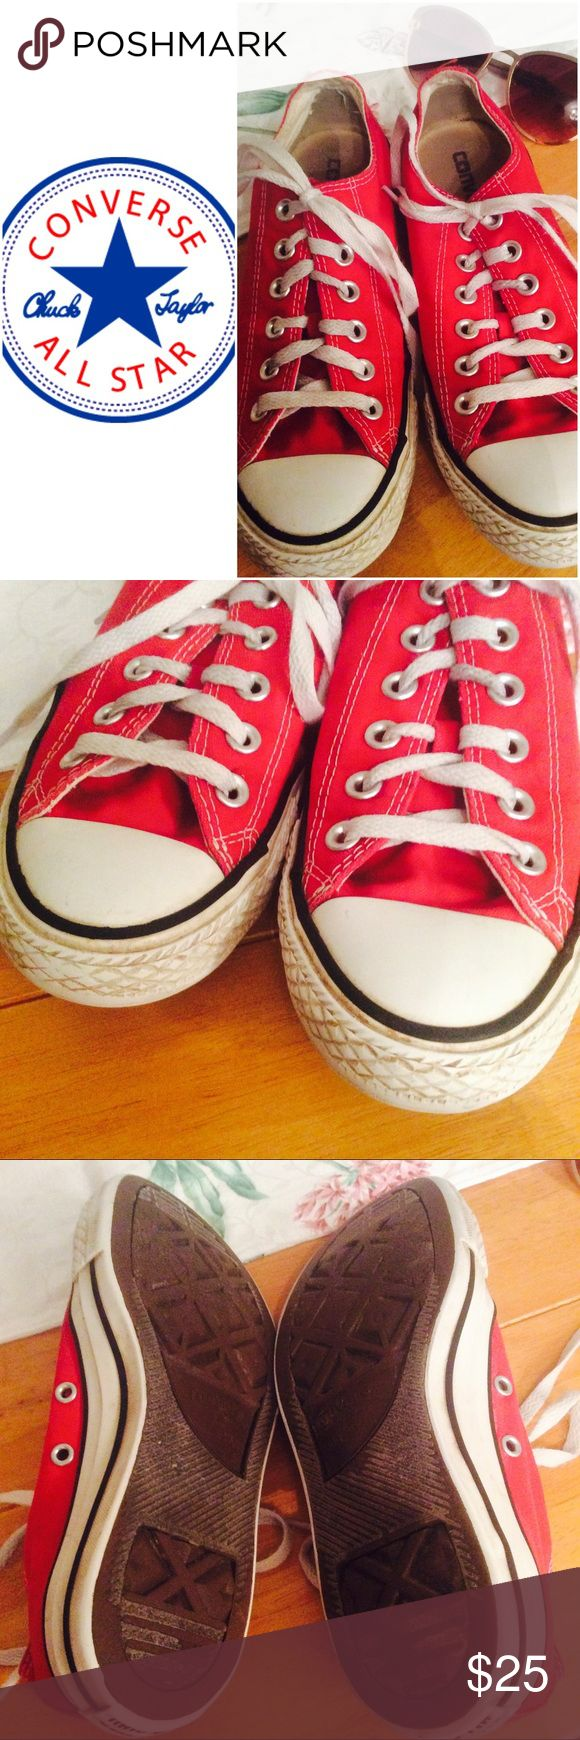 ⭐️ Red Converse Sneakers These cute Converses are well loved, but still in good shape. Some markings and grime on the rubber. Some stains on the laces. Writing on the inside of the tongue. Colors are still bright and adorable! Women's 7, men's 5. Make me an offer! Converse Shoes Sneakers